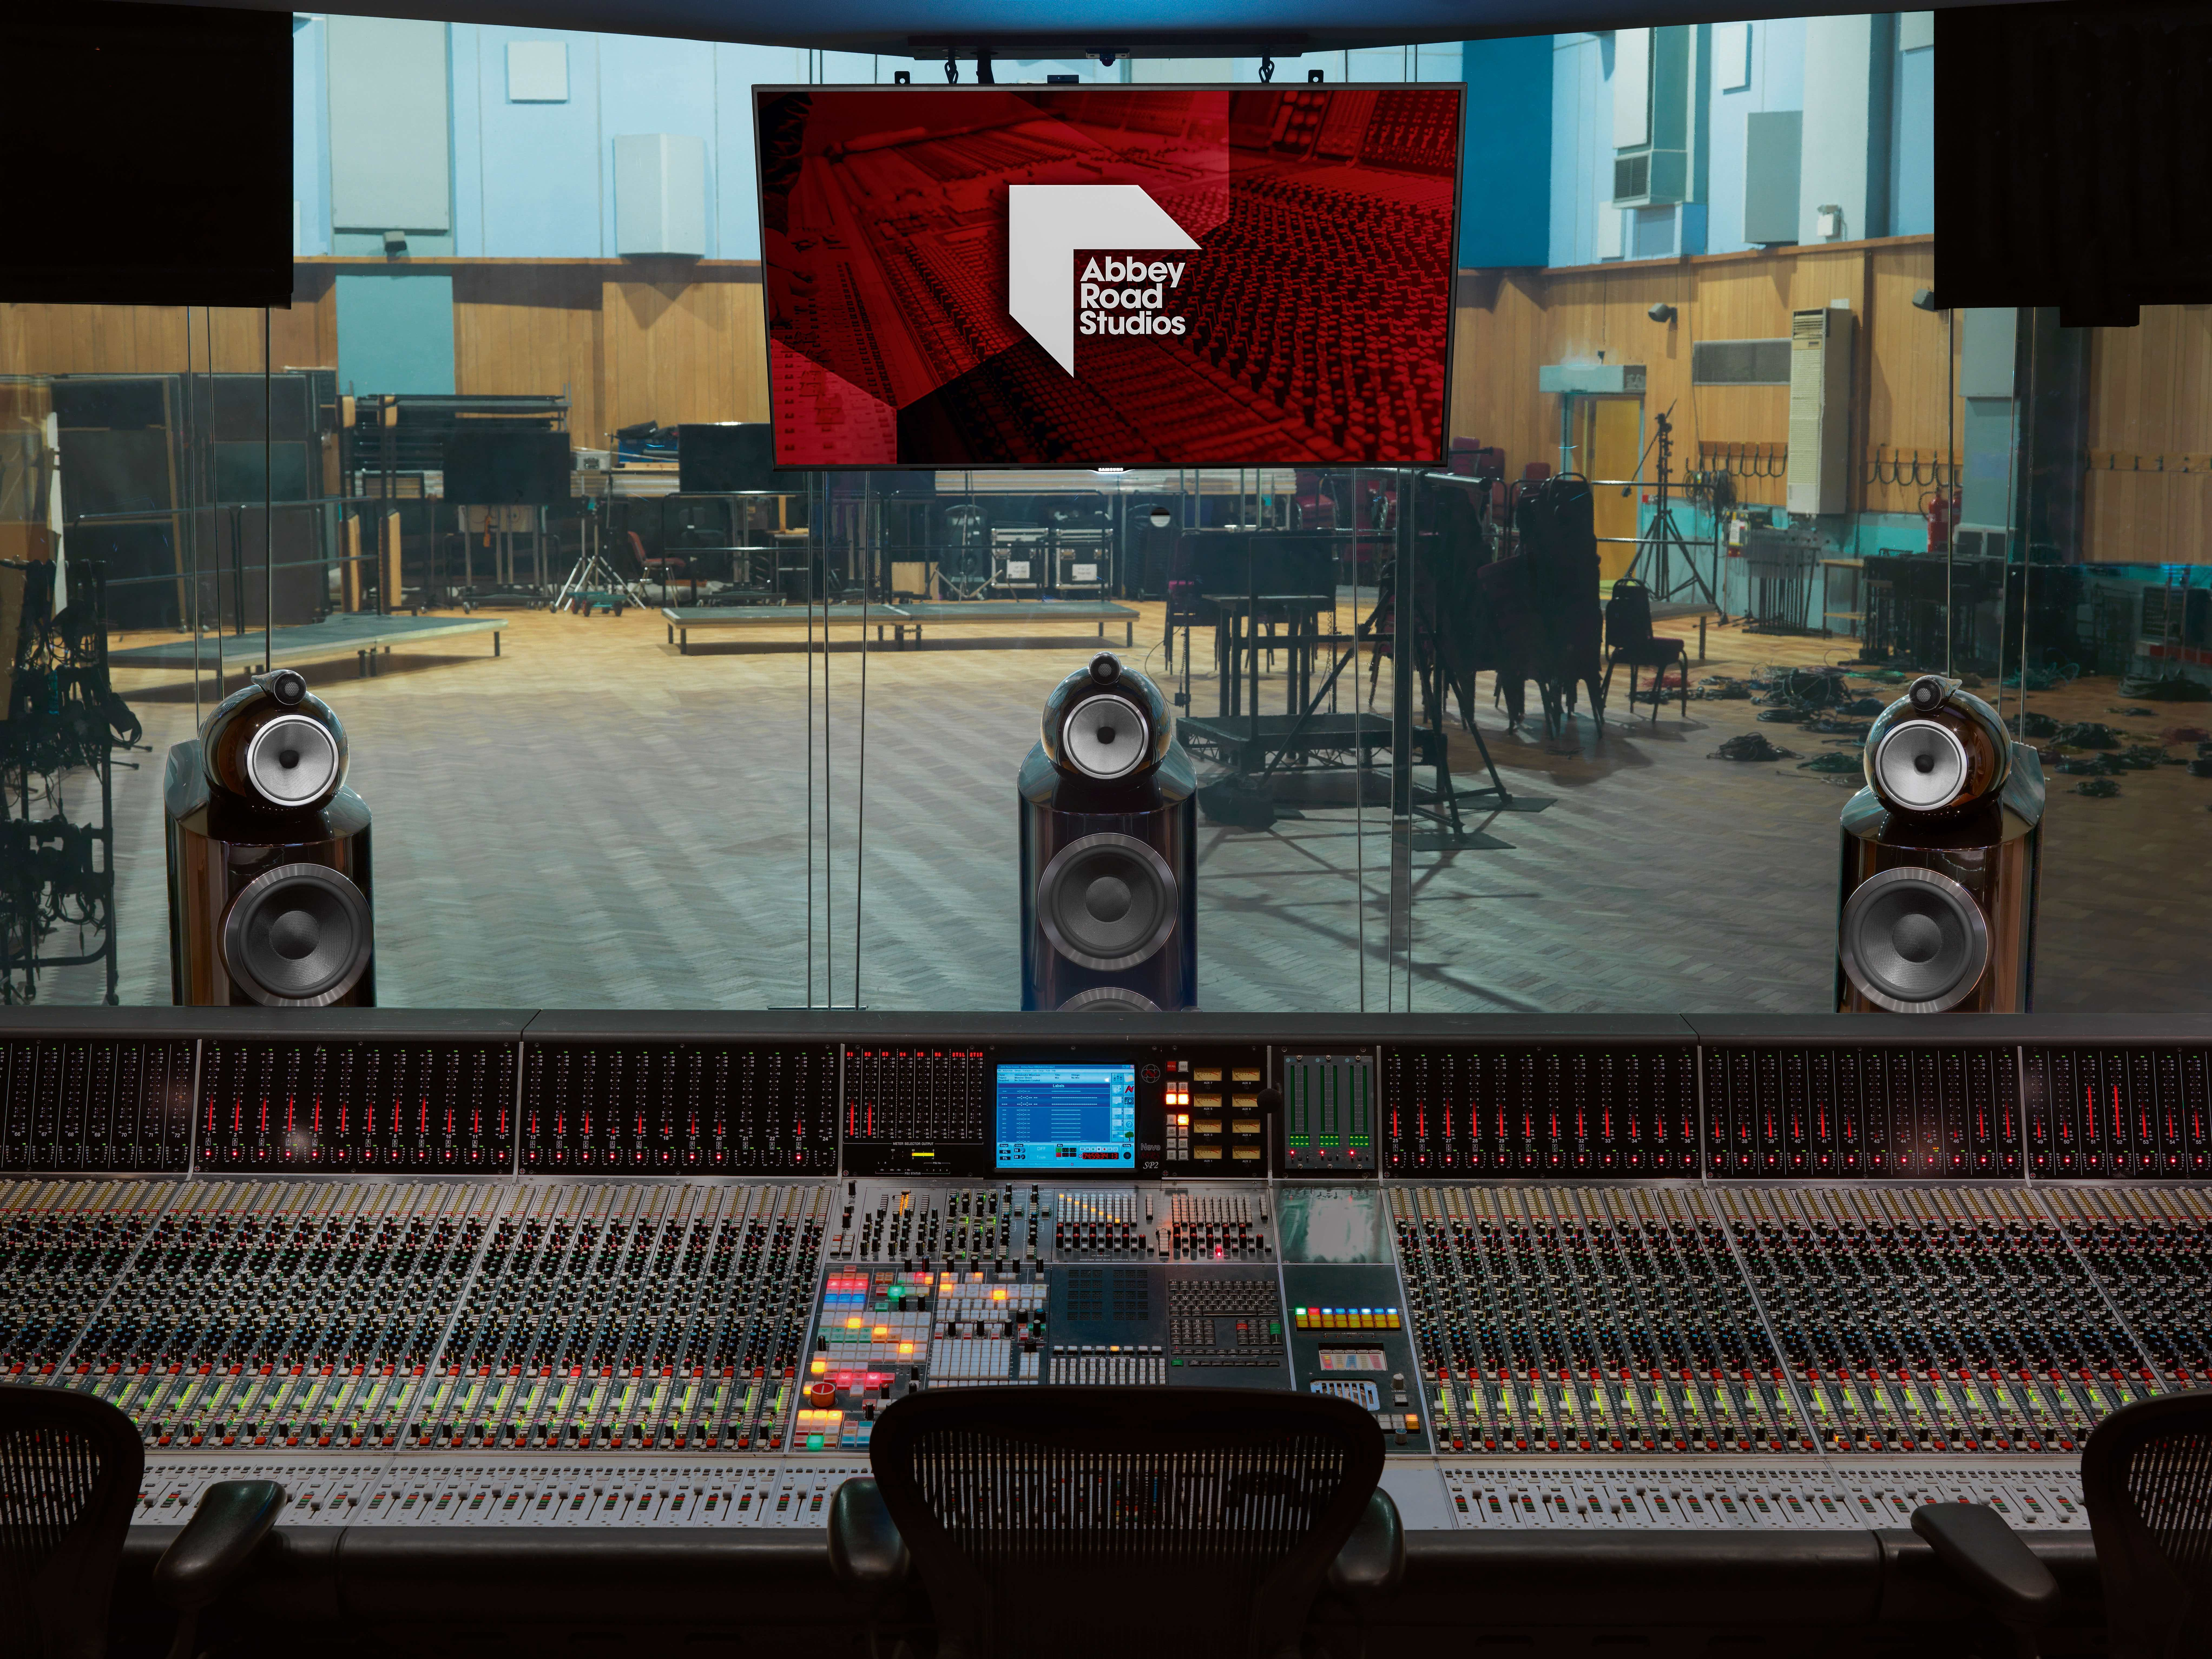 Abbey Road Studios and Bowers & Wilkins Extend Partnership to Transform In-car Audio Entertainment